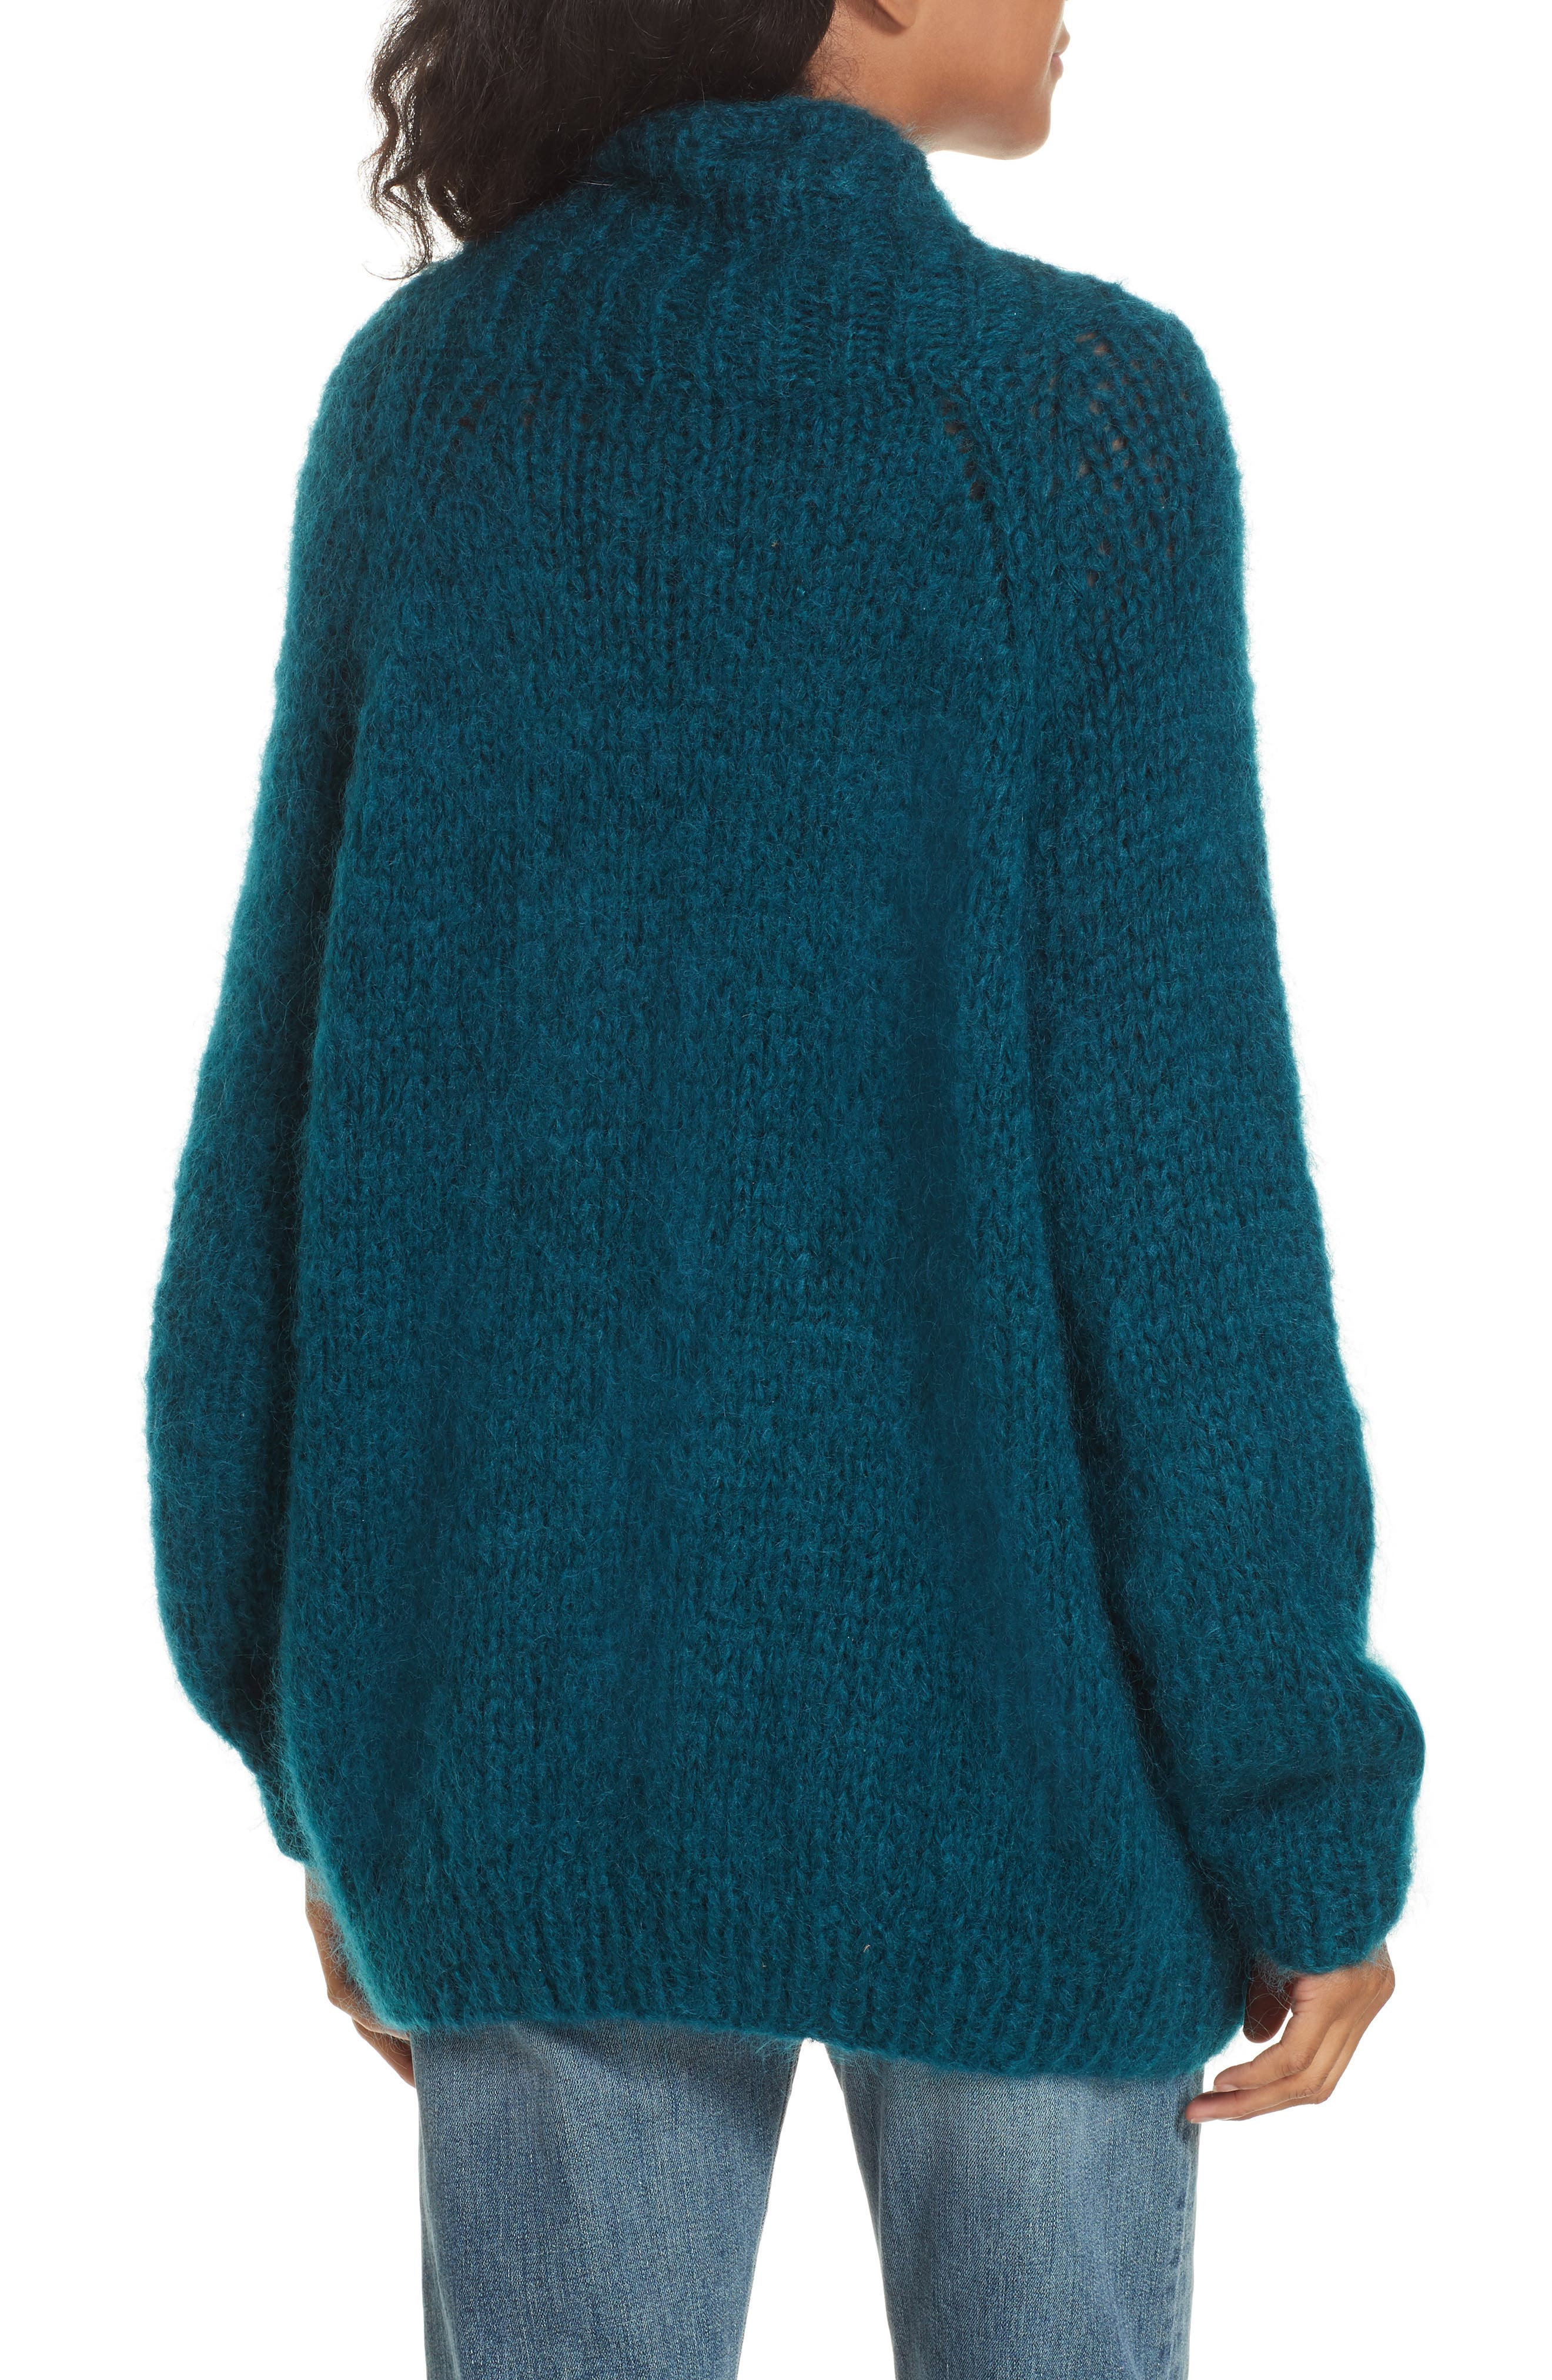 Knitted Cardigan,                             Alternate thumbnail 2, color,                             440